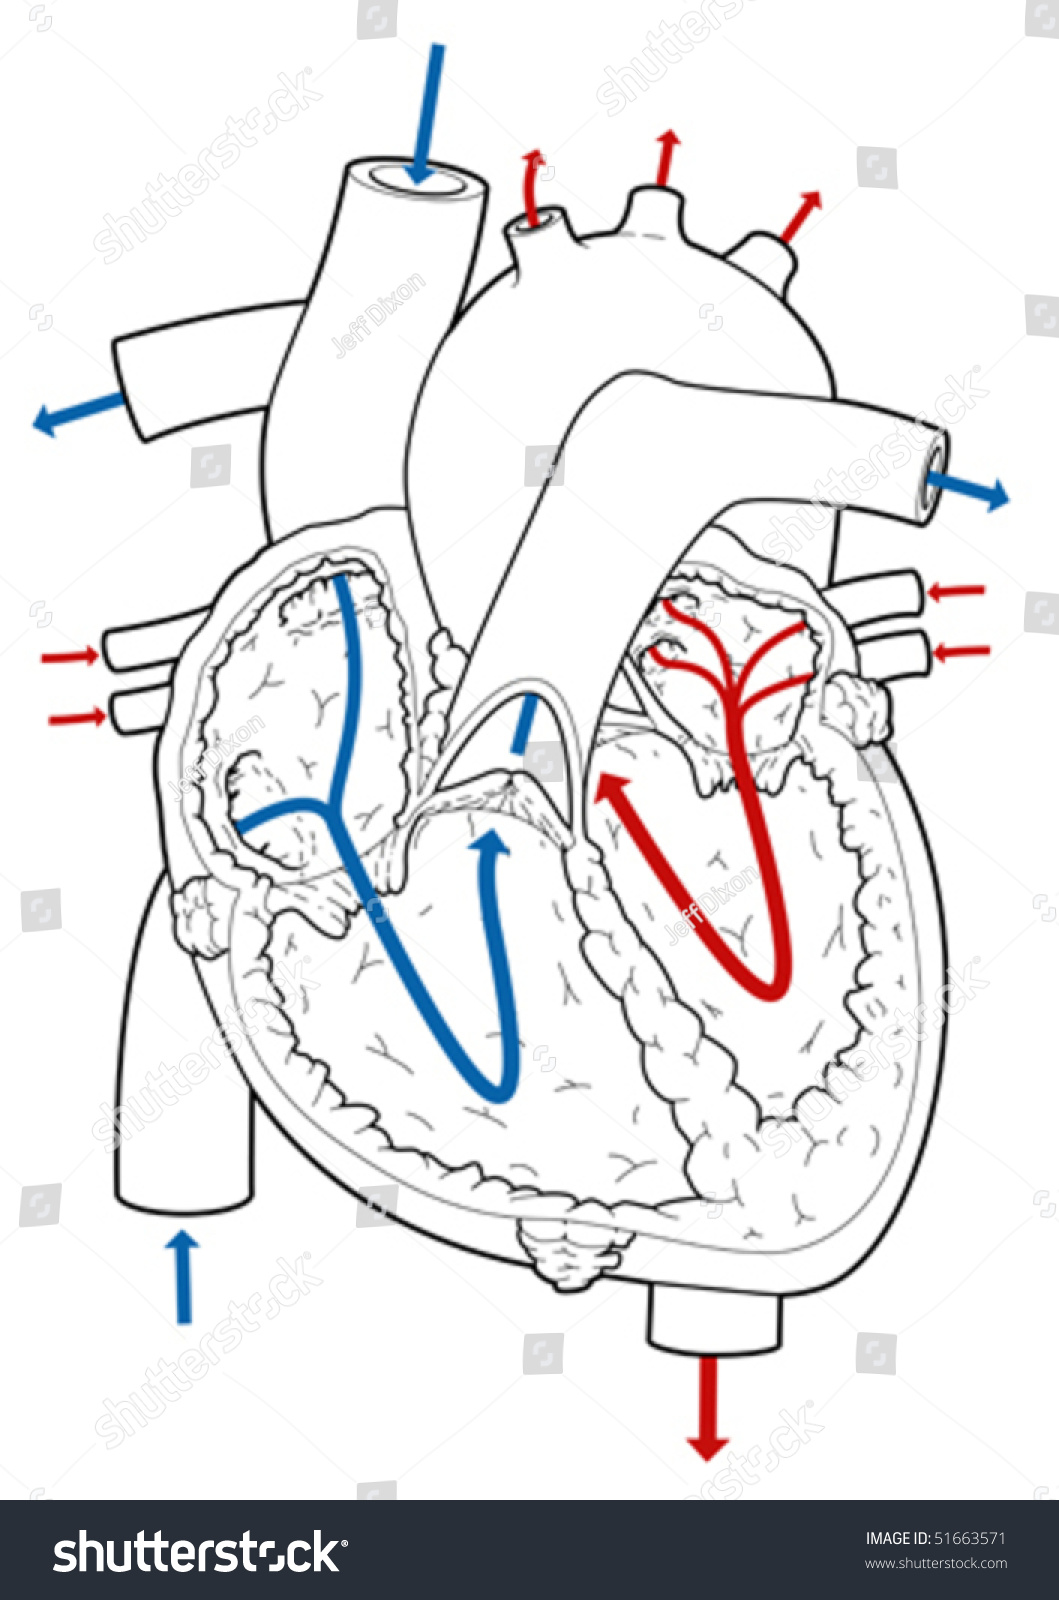 chamber heart diagram worksheet sheep dissection cross section vector illustration arrows stock